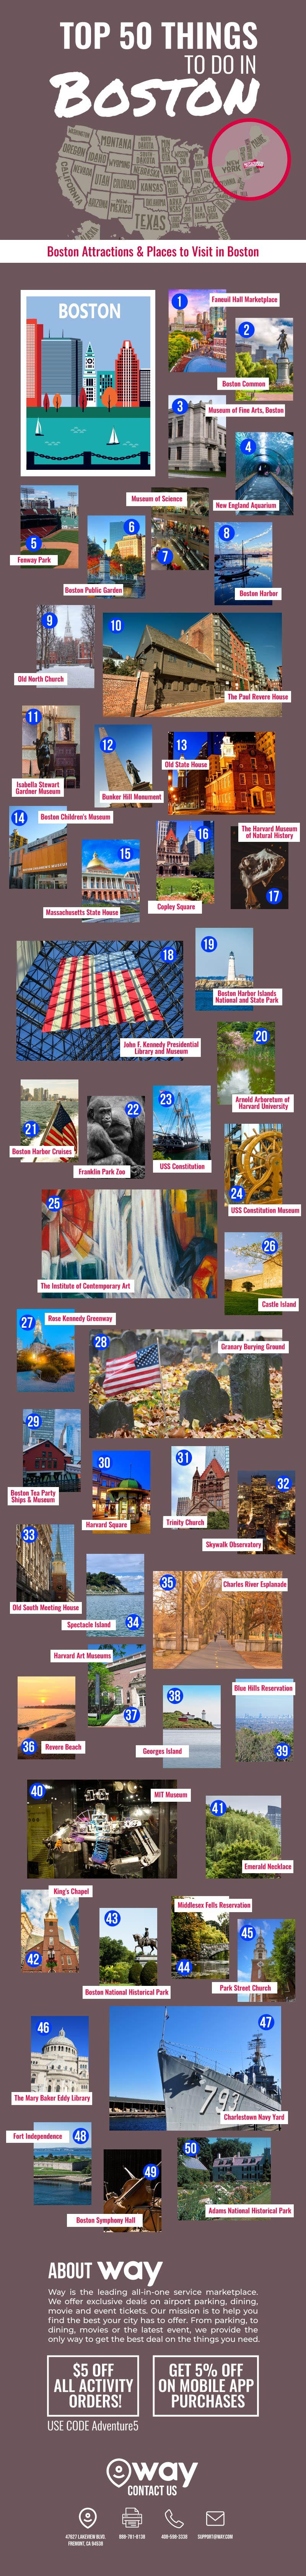 50 Must-Do Must-See Places in Boston - Infographic